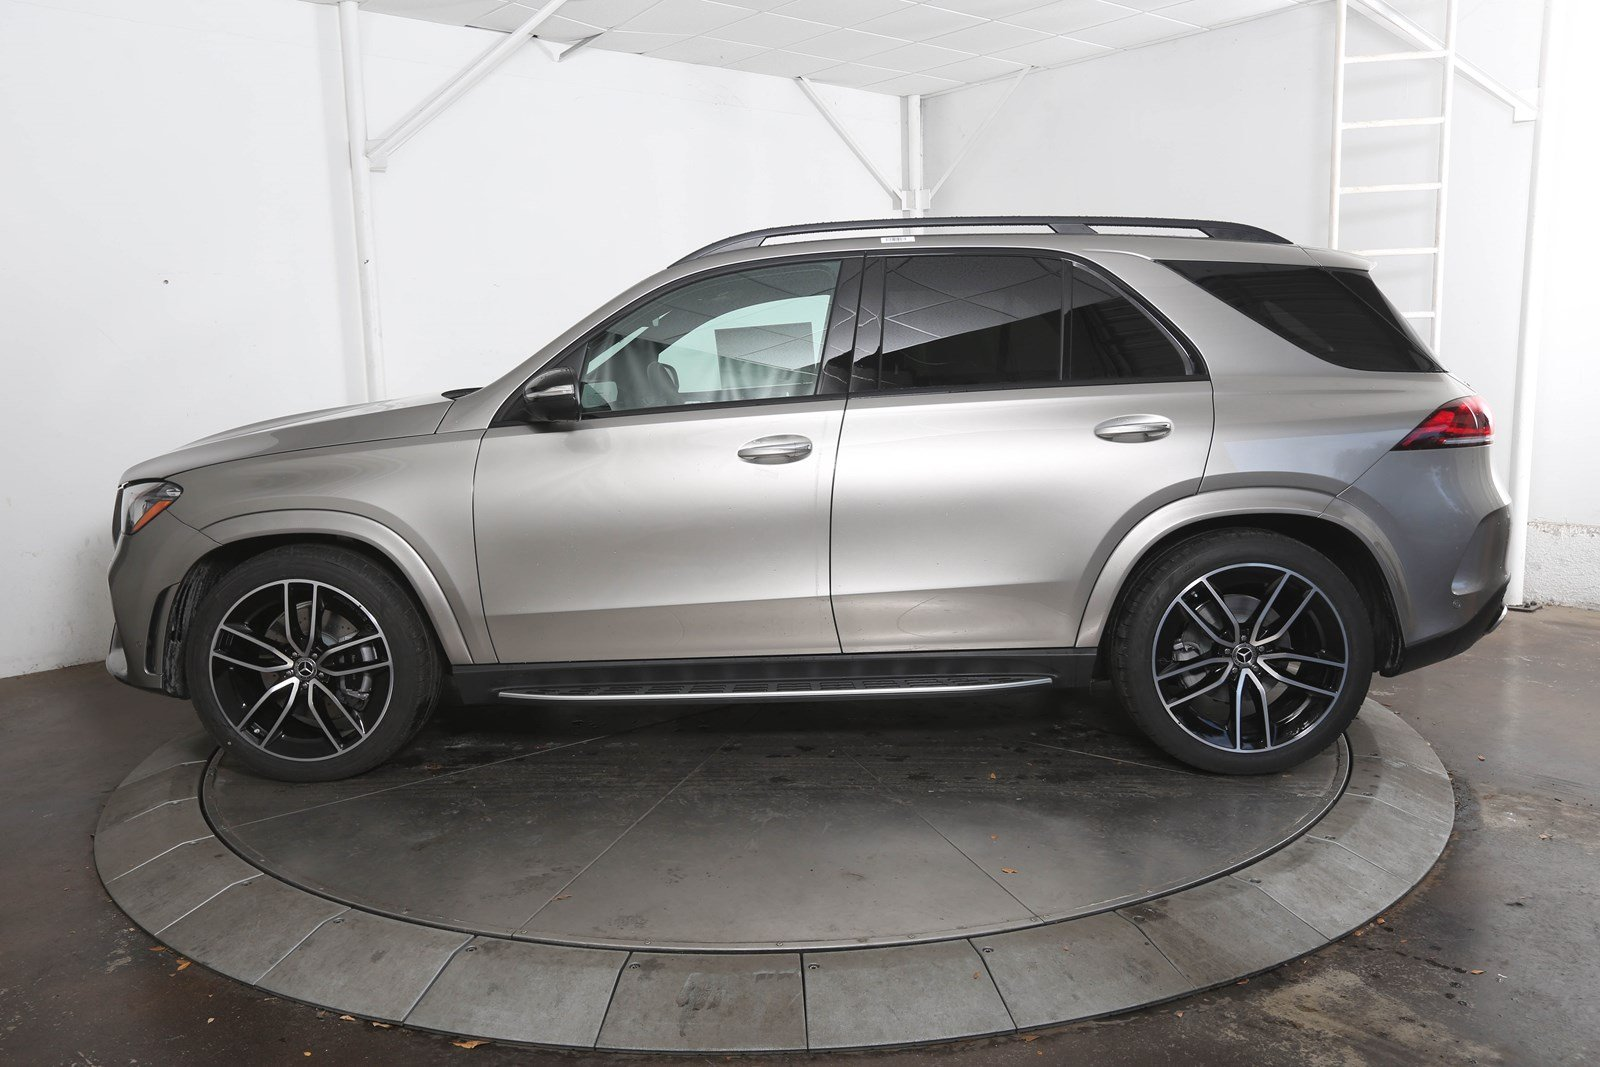 New 2020 Mercedes-Benz GLE GLE 580 SUV in Austin #M60847 ...